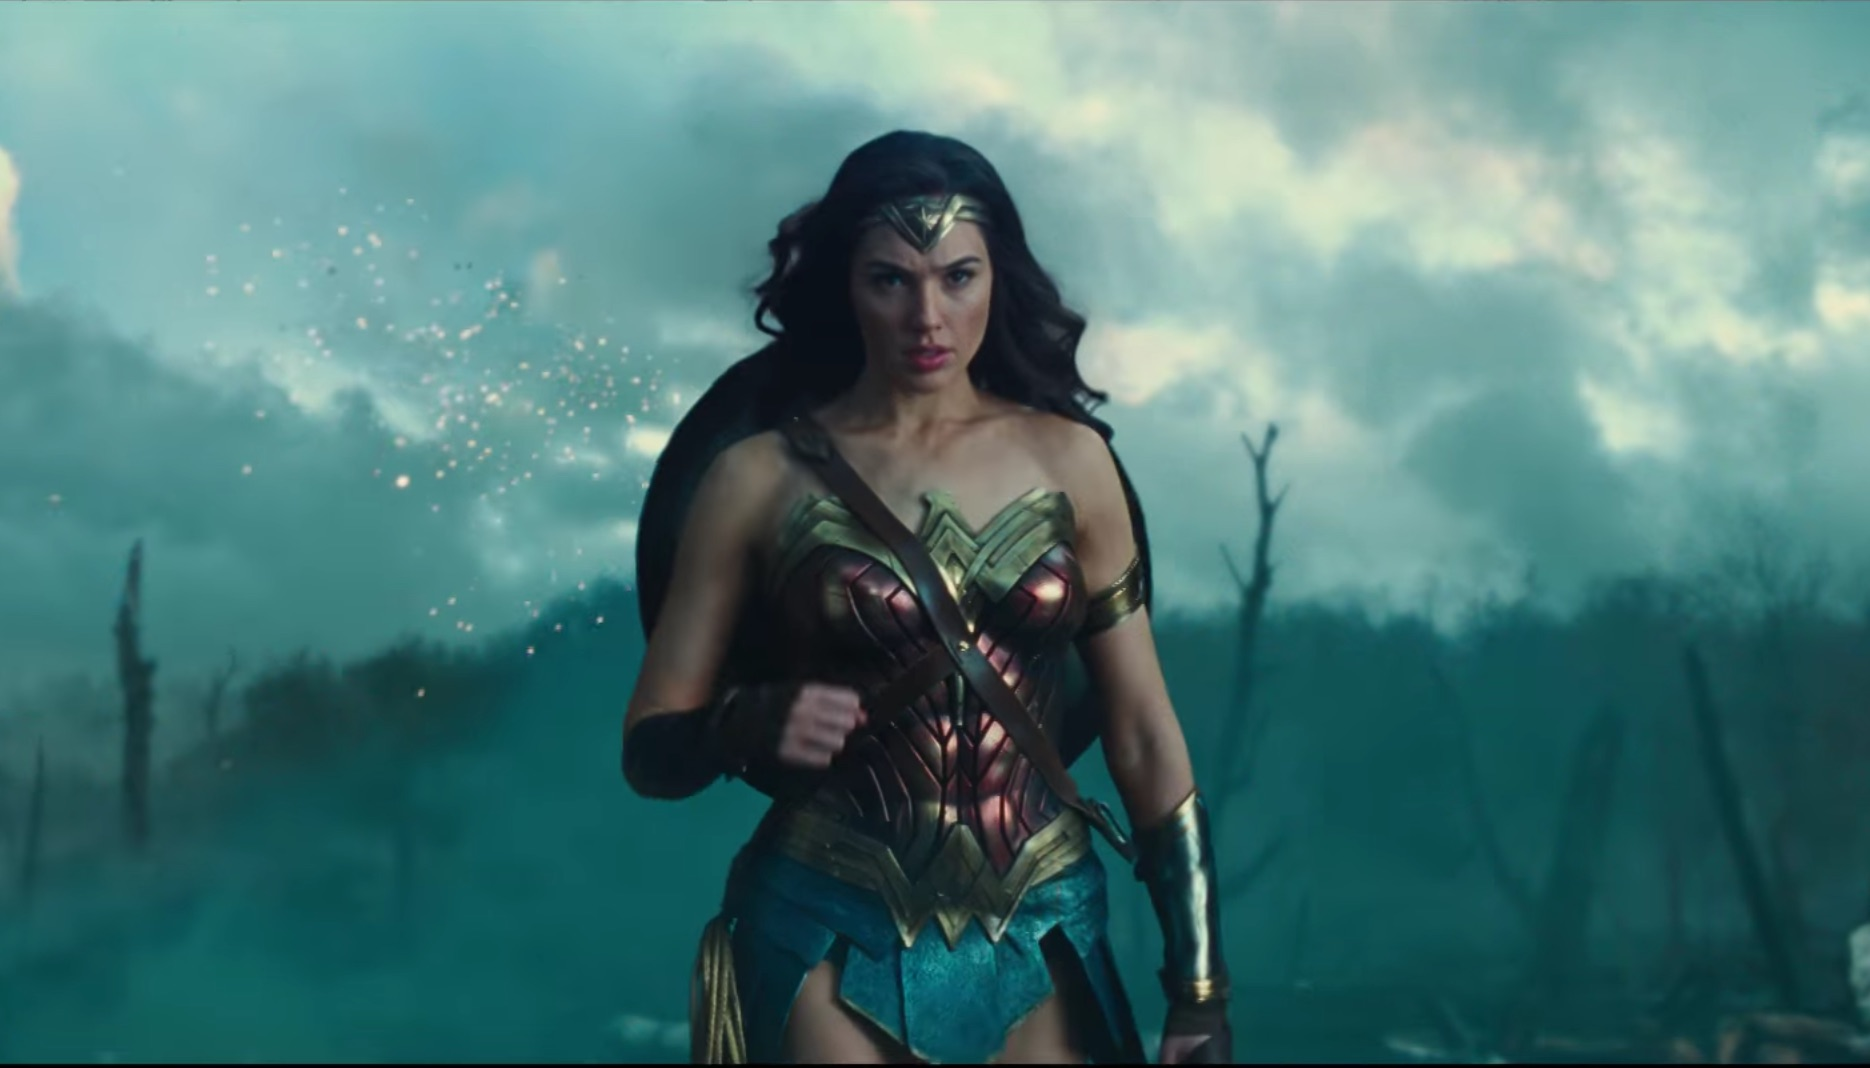 There's a new Wonder Woman trailer and it looks dark and amazing